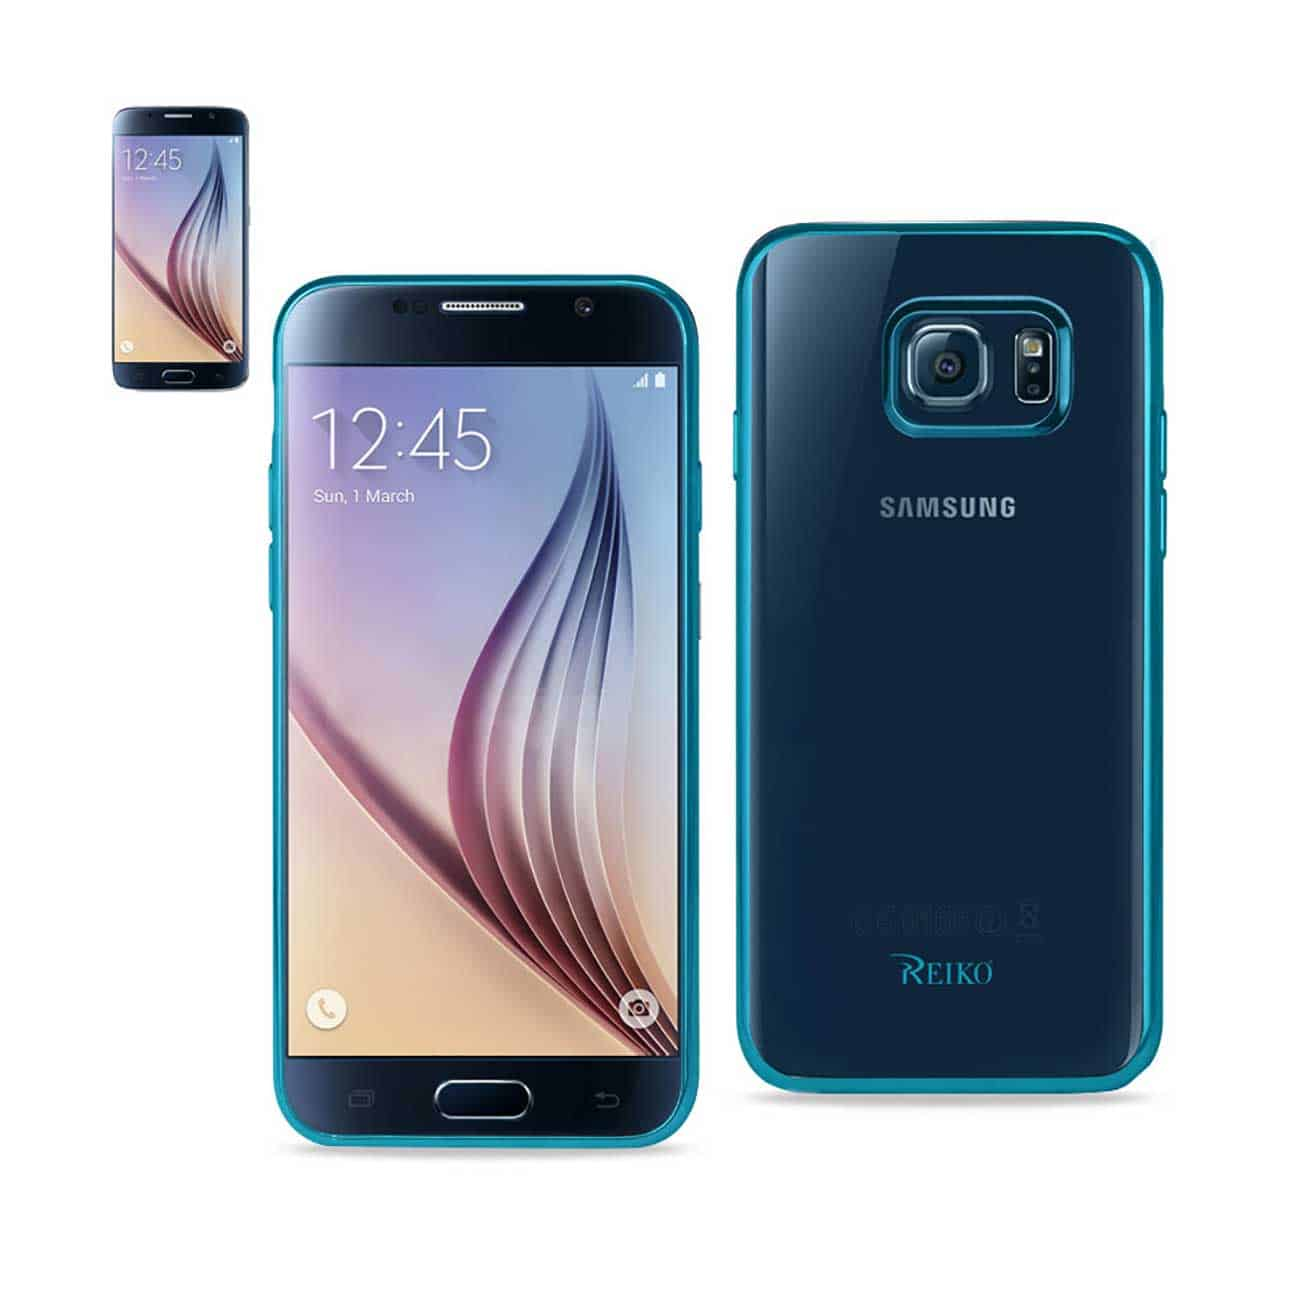 SAMSUNG GALAXY S6 FRAME CASE IN SHINY BLUE